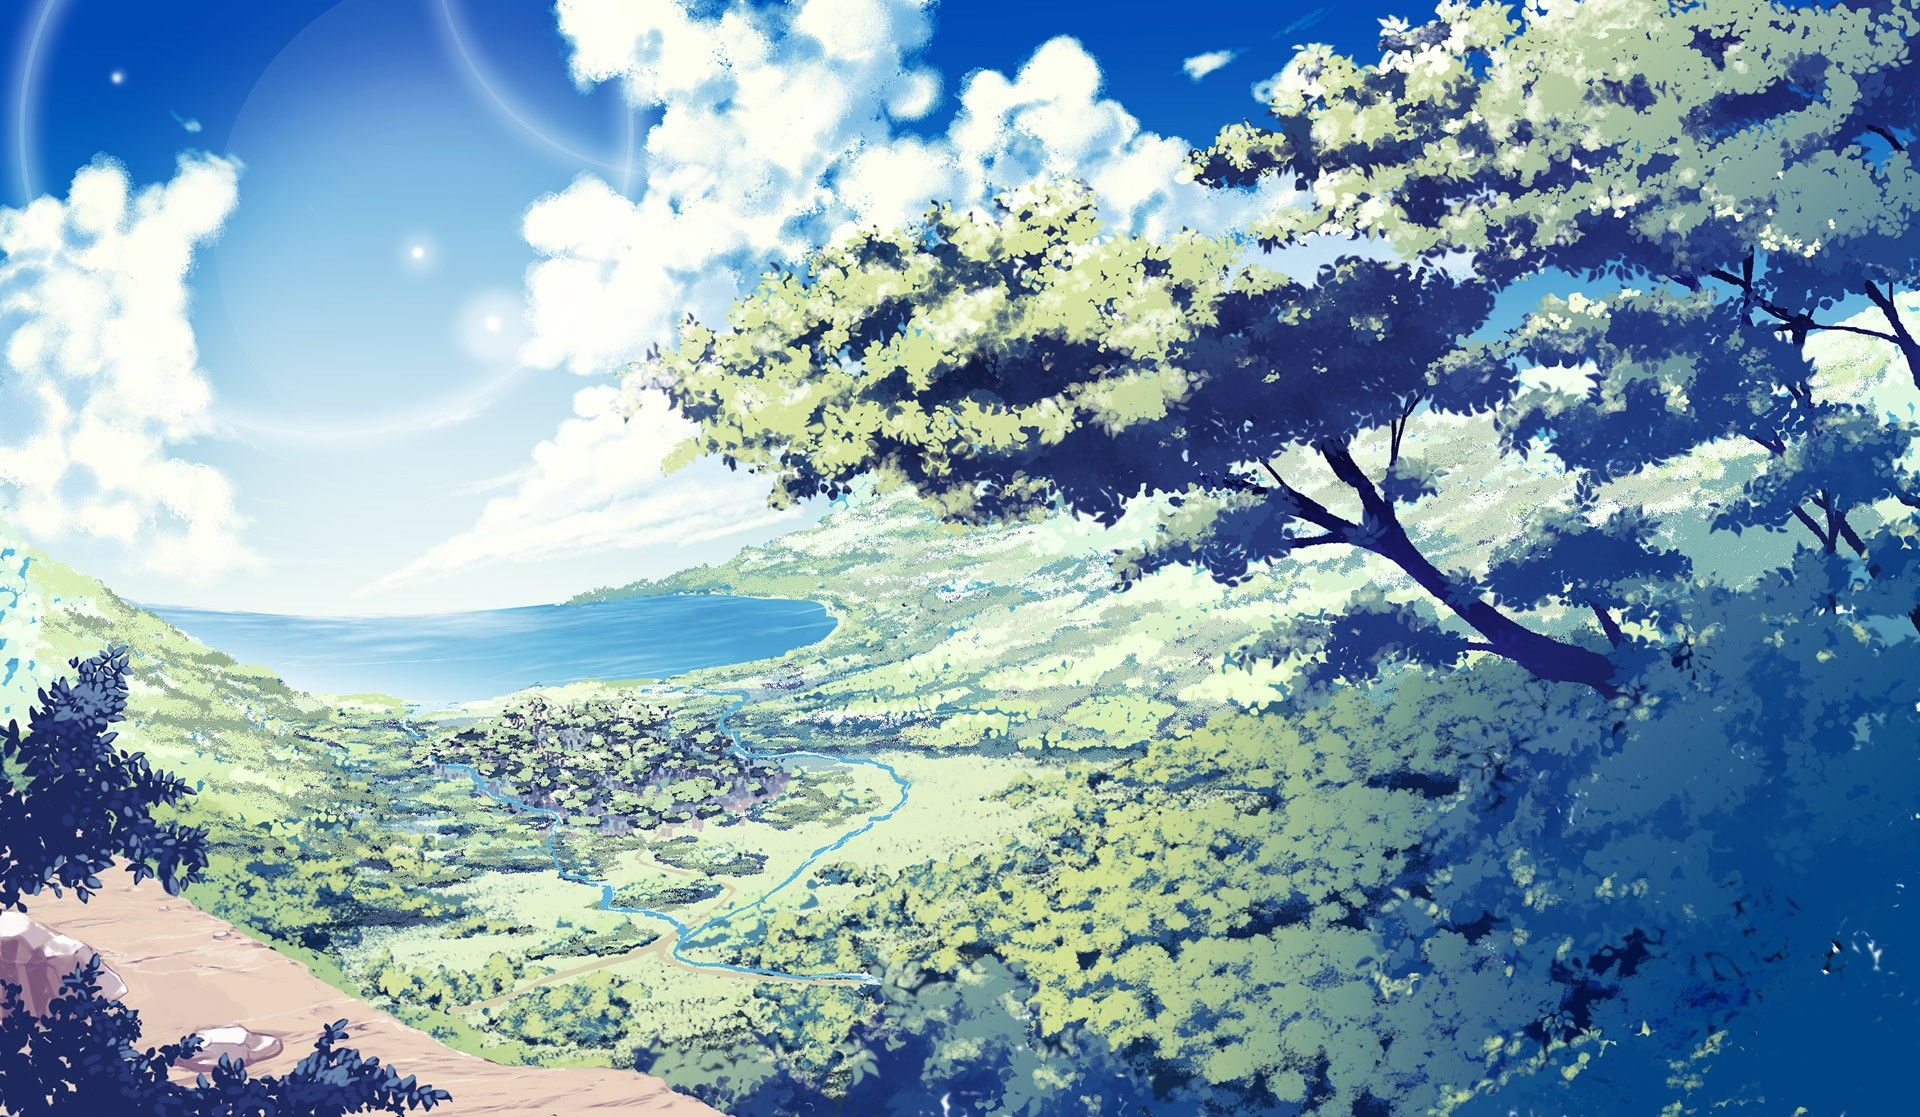 Anime Wallpaper Nature